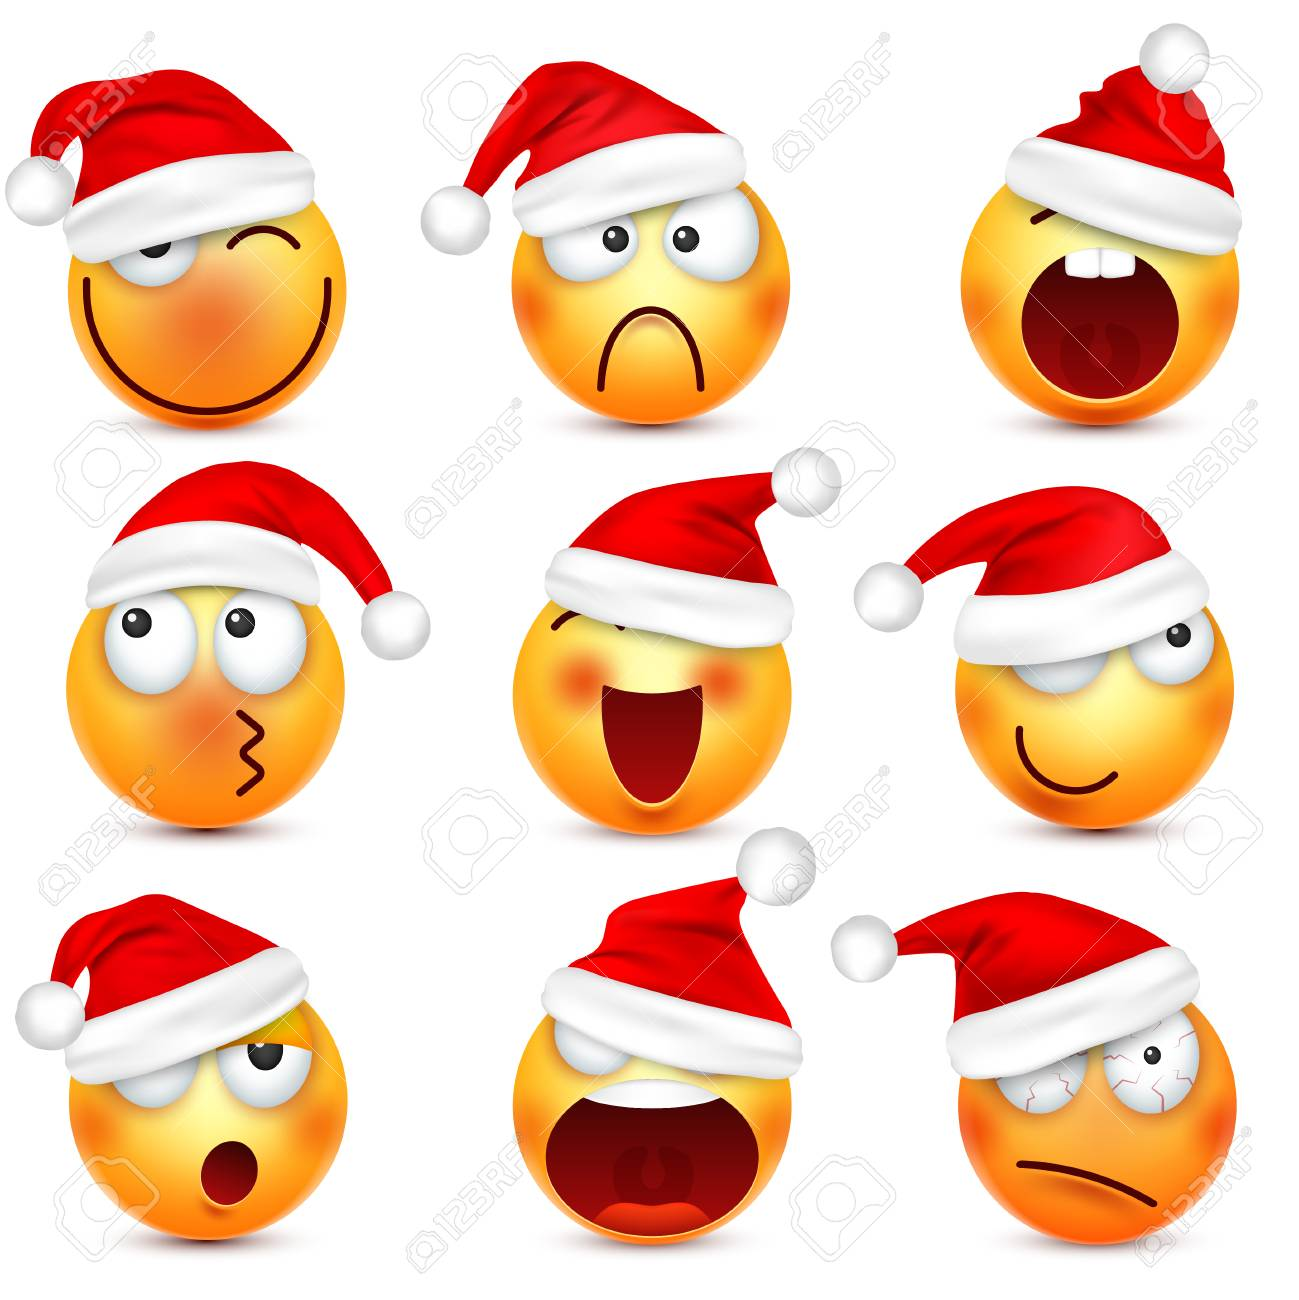 Christmas Emoji.Smiley Emoticon Set Yellow Face With Emotions And Christmas